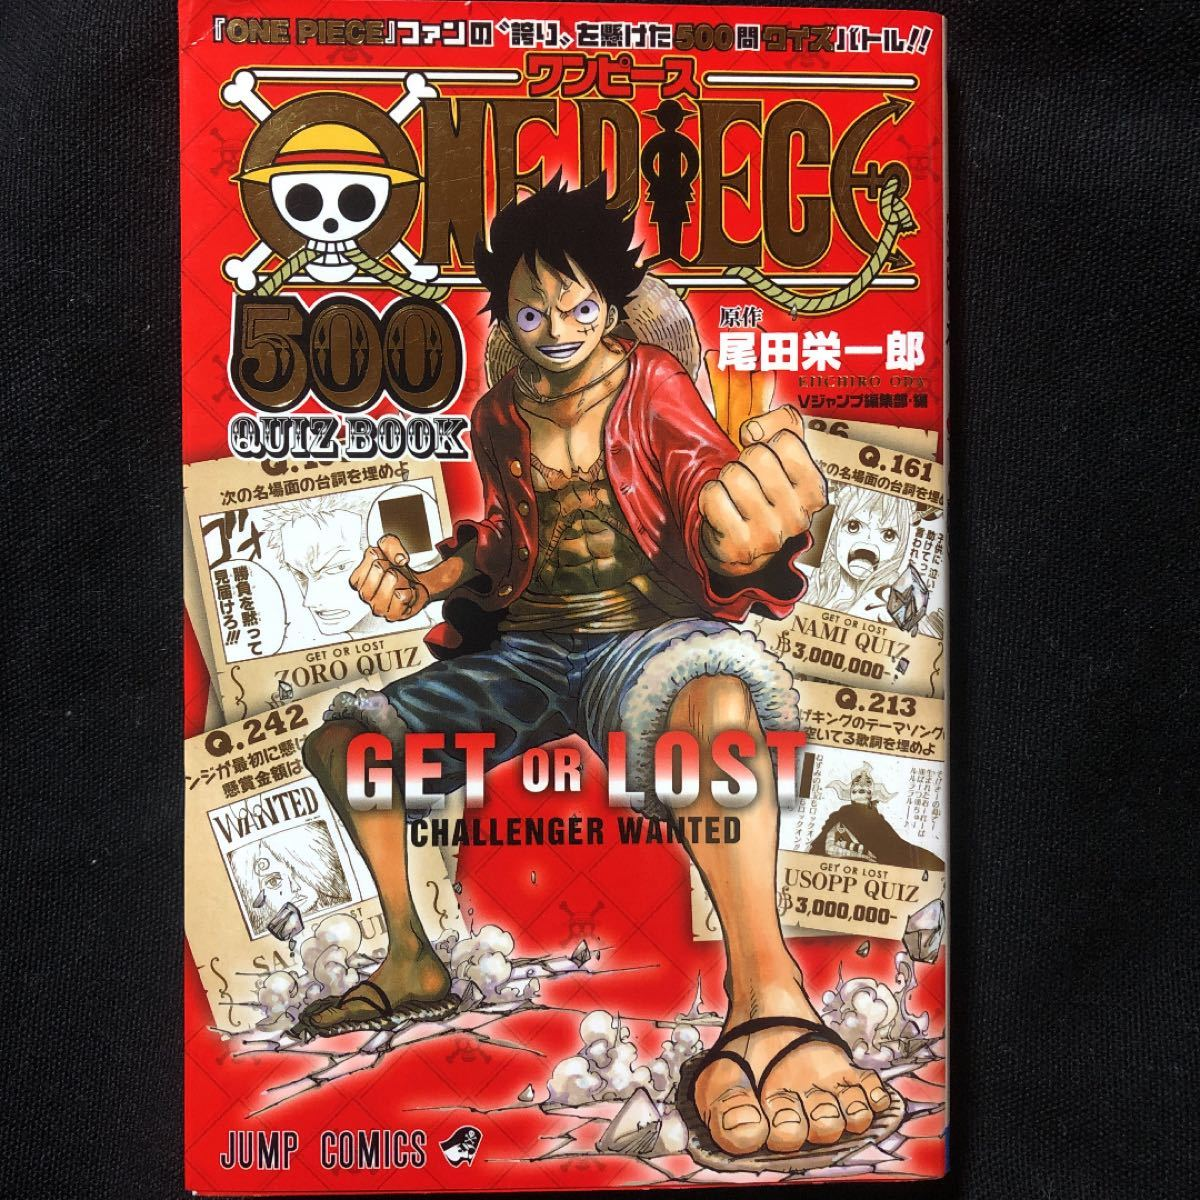 ONE PIECE 500 QUIZ BOOK 、ONE PIECE 500 QUIZ BOOK 2